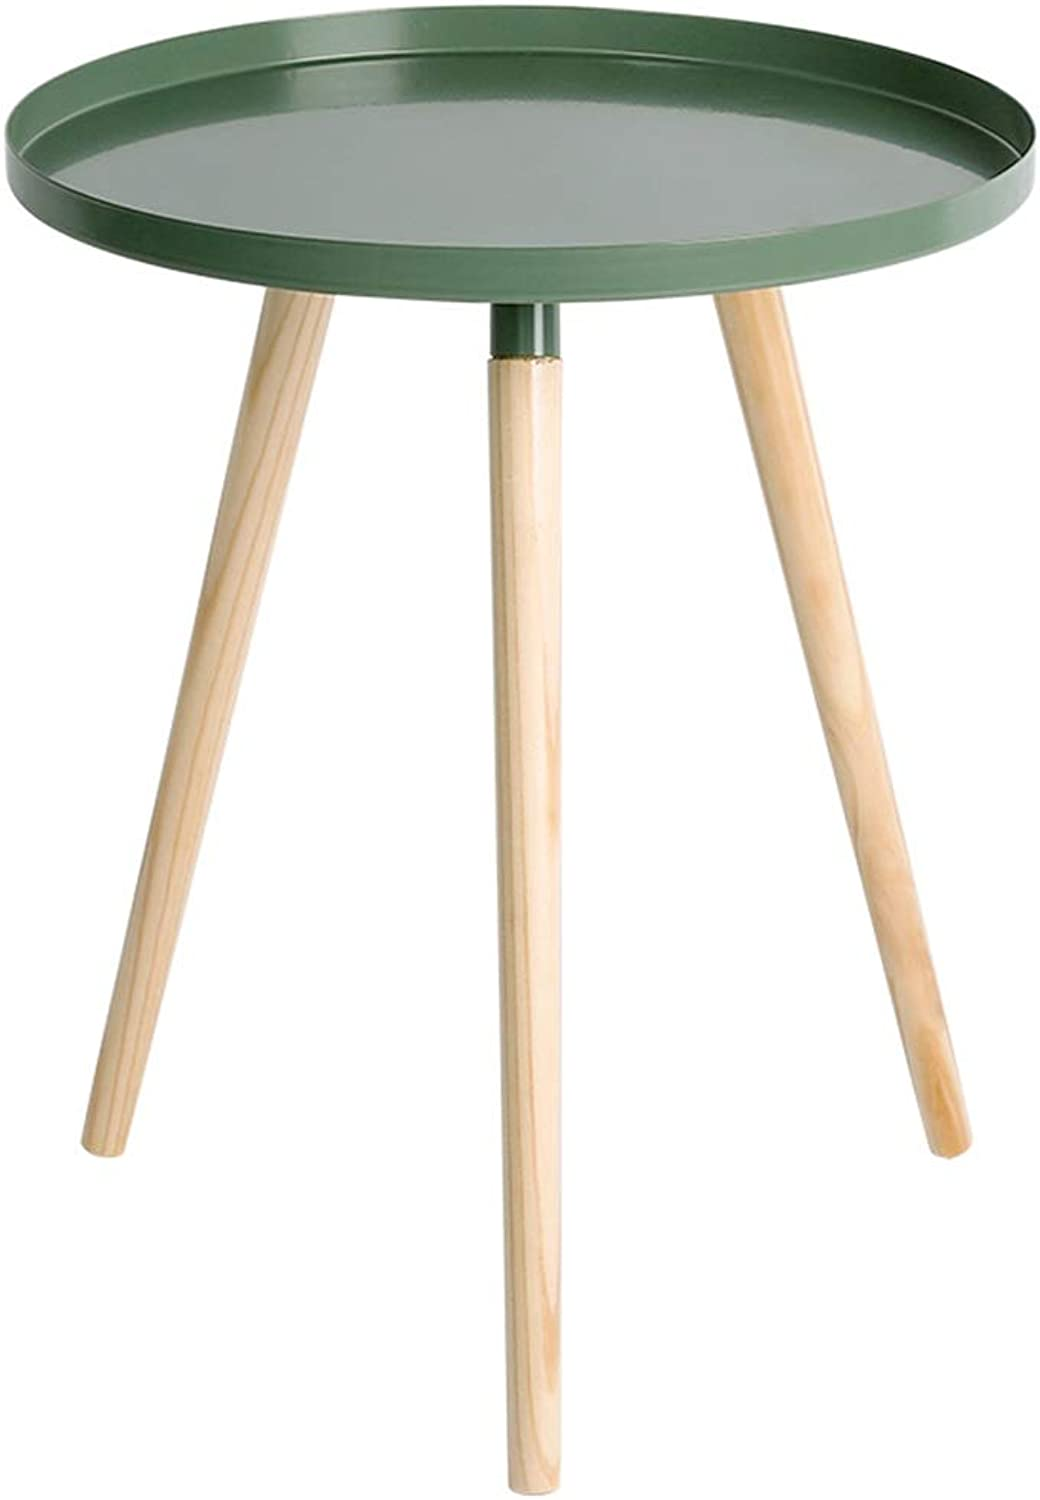 Small Coffee Table Solid Wood Corner Wrought Iron Mini Side, Simple Living Room Balcony, Green(44×44×50cm)